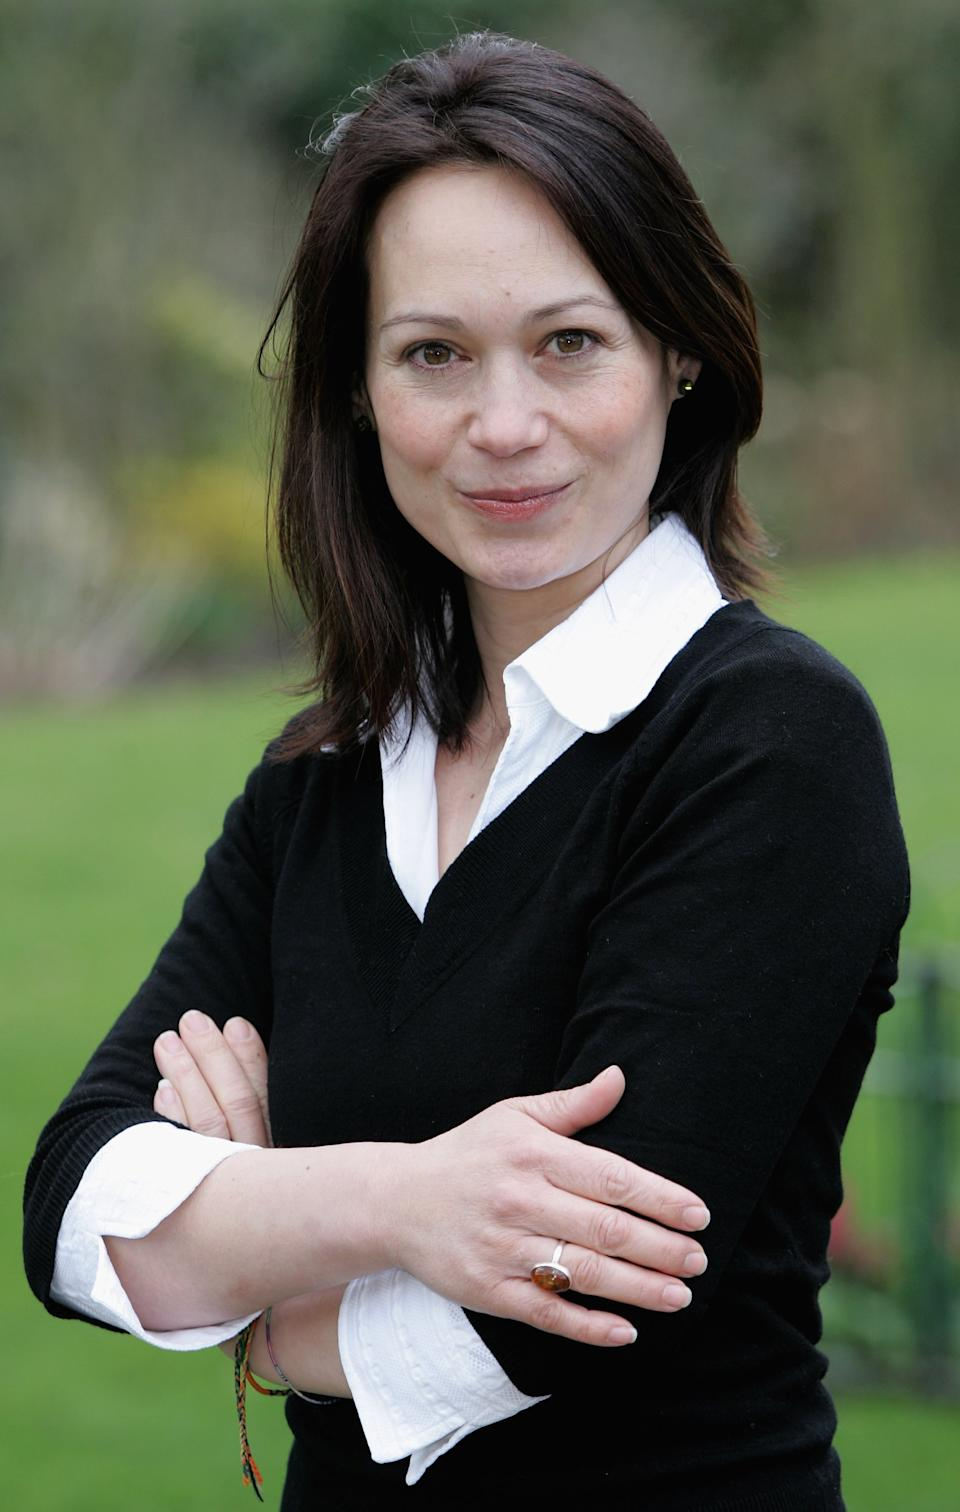 BROMLEY, UNITED KINGDOM - APRIL 03:  Leah Bracknell poses at the photocall and launch for the new theatrical production of 'Strangers On A Train' at the Churchill Theatre, Bromley on April 3, 2006 in Kent, England. The show, based on the novel by Patricia Highsmith, and filmed by Alfred Hitchcock, will run from April 27 to May 6 before embarking on a major tour of theatres across the country.  (Photo by Gareth Cattermole/Getty Images)